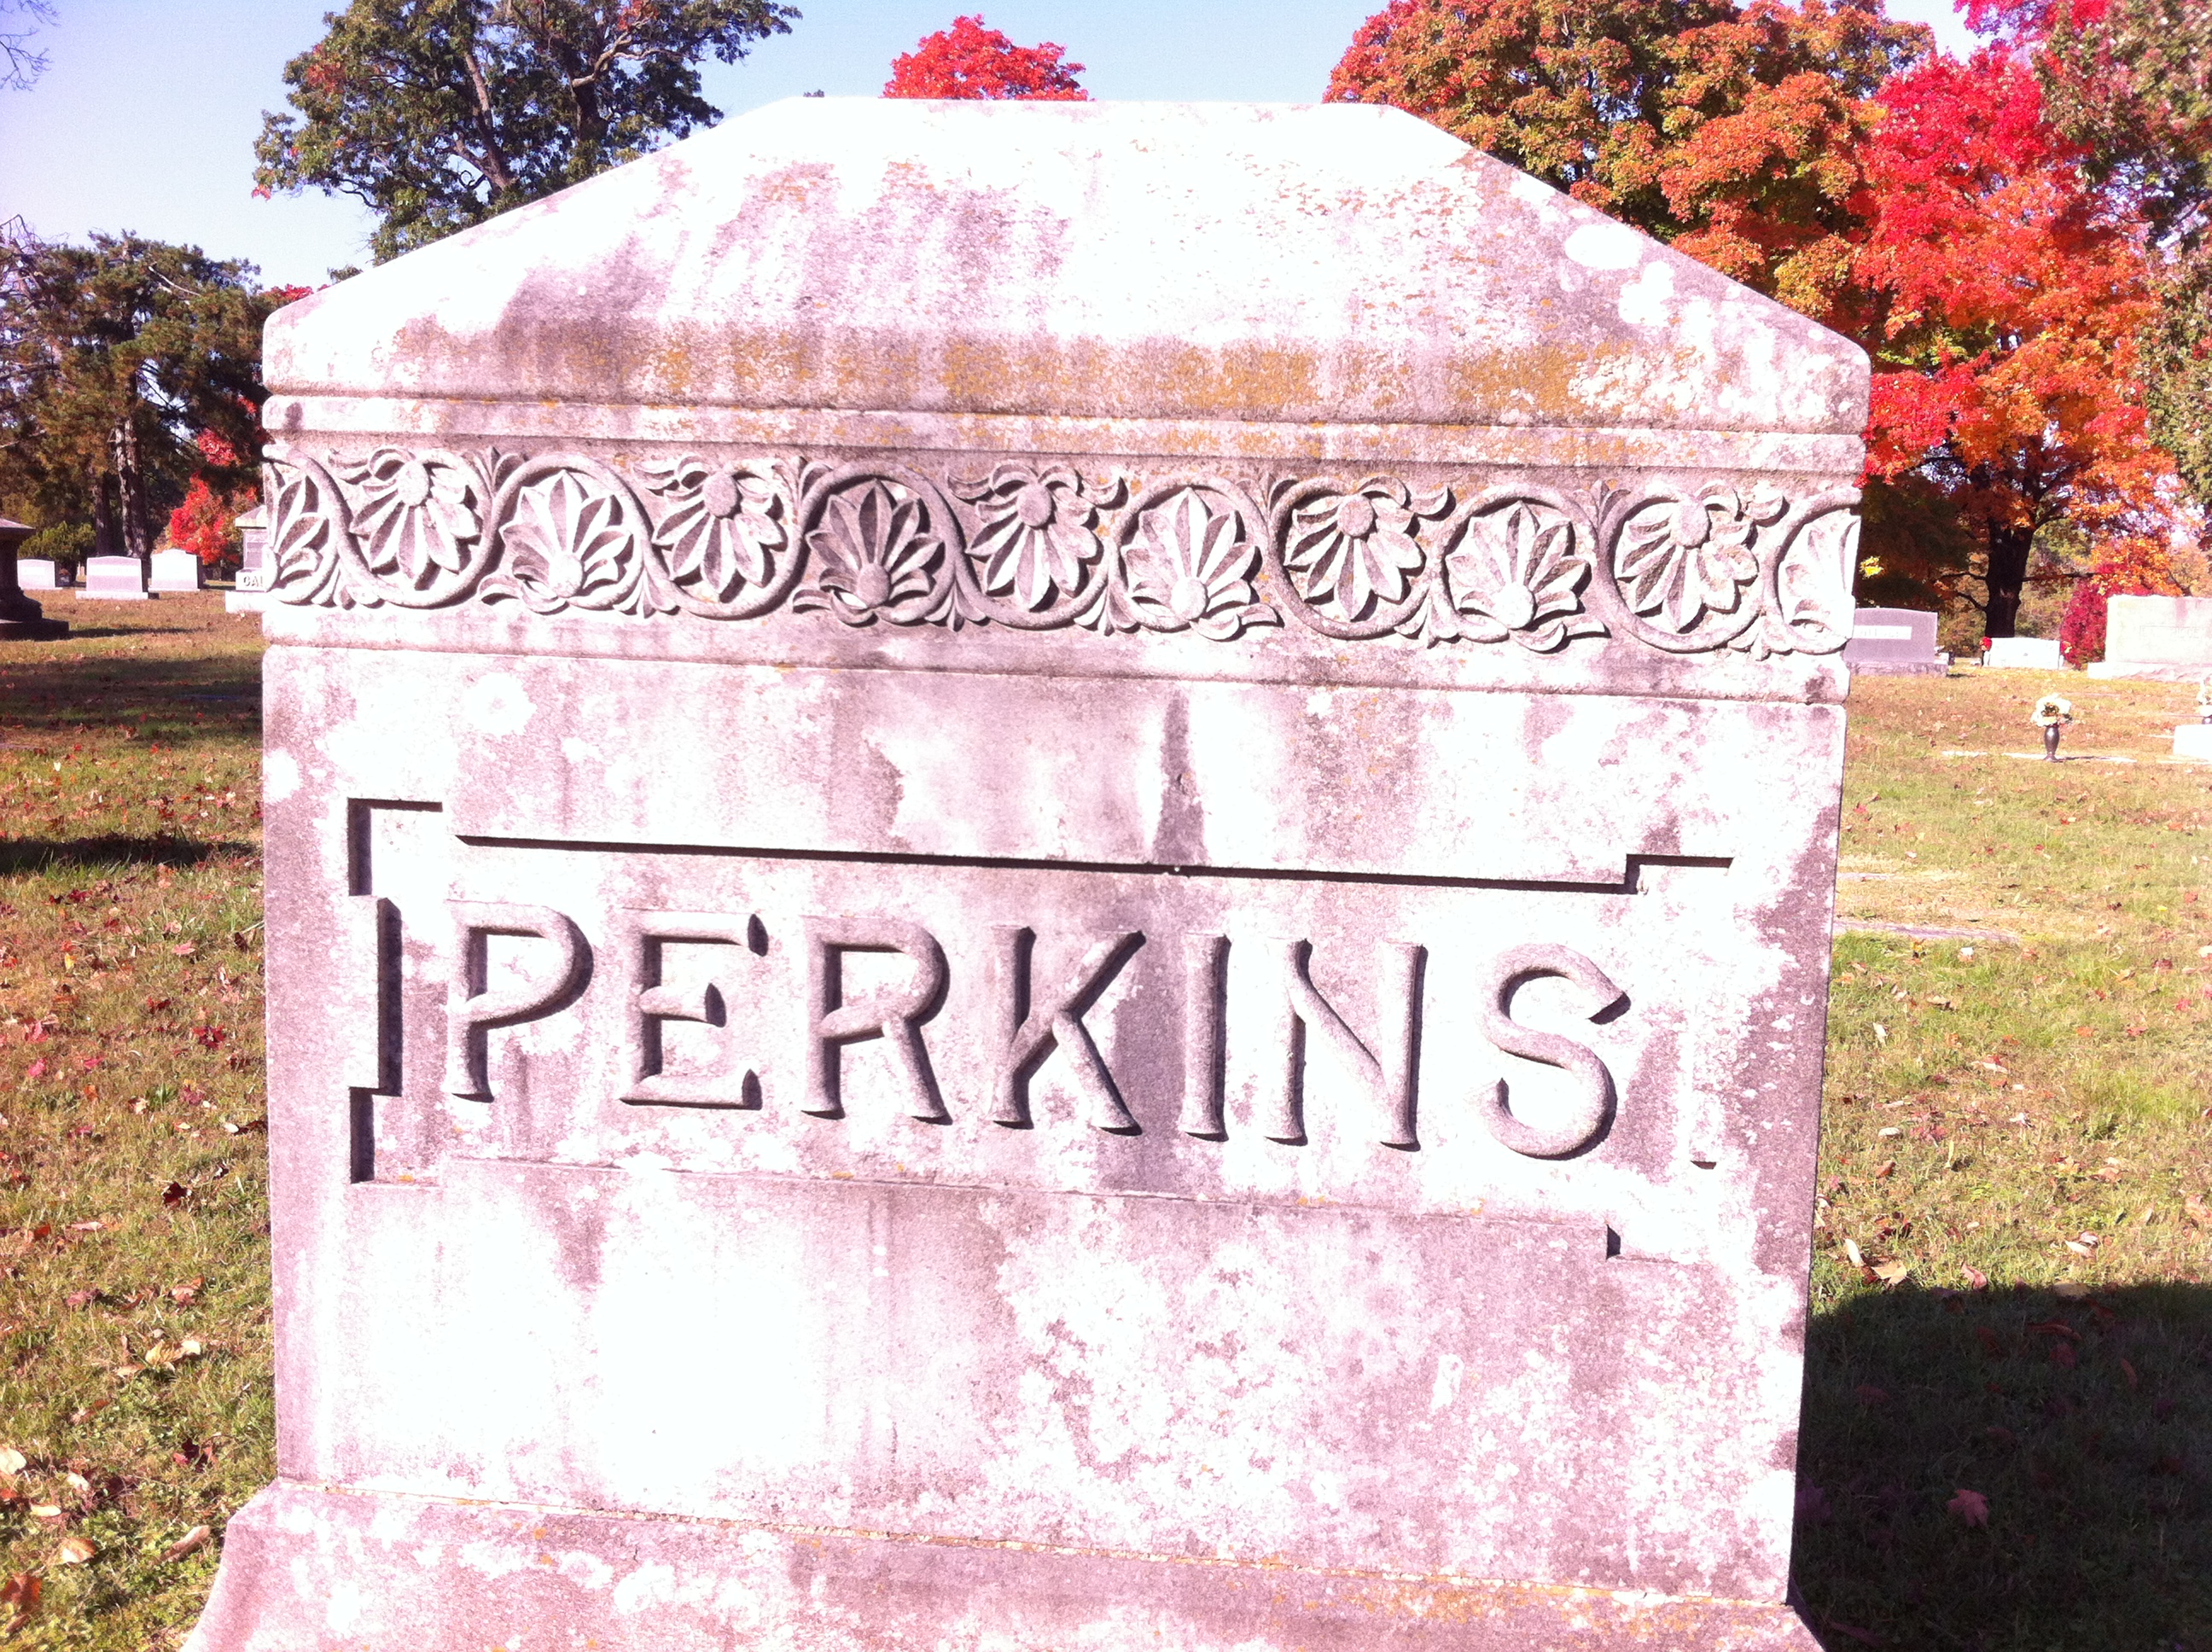 Perkins family marker in Park Cemetery. Joseph Perkins was a long-time county judge in the late 19th and early 20th centuries. He is the father of zoologist and television personality R. Marlin Perkins.